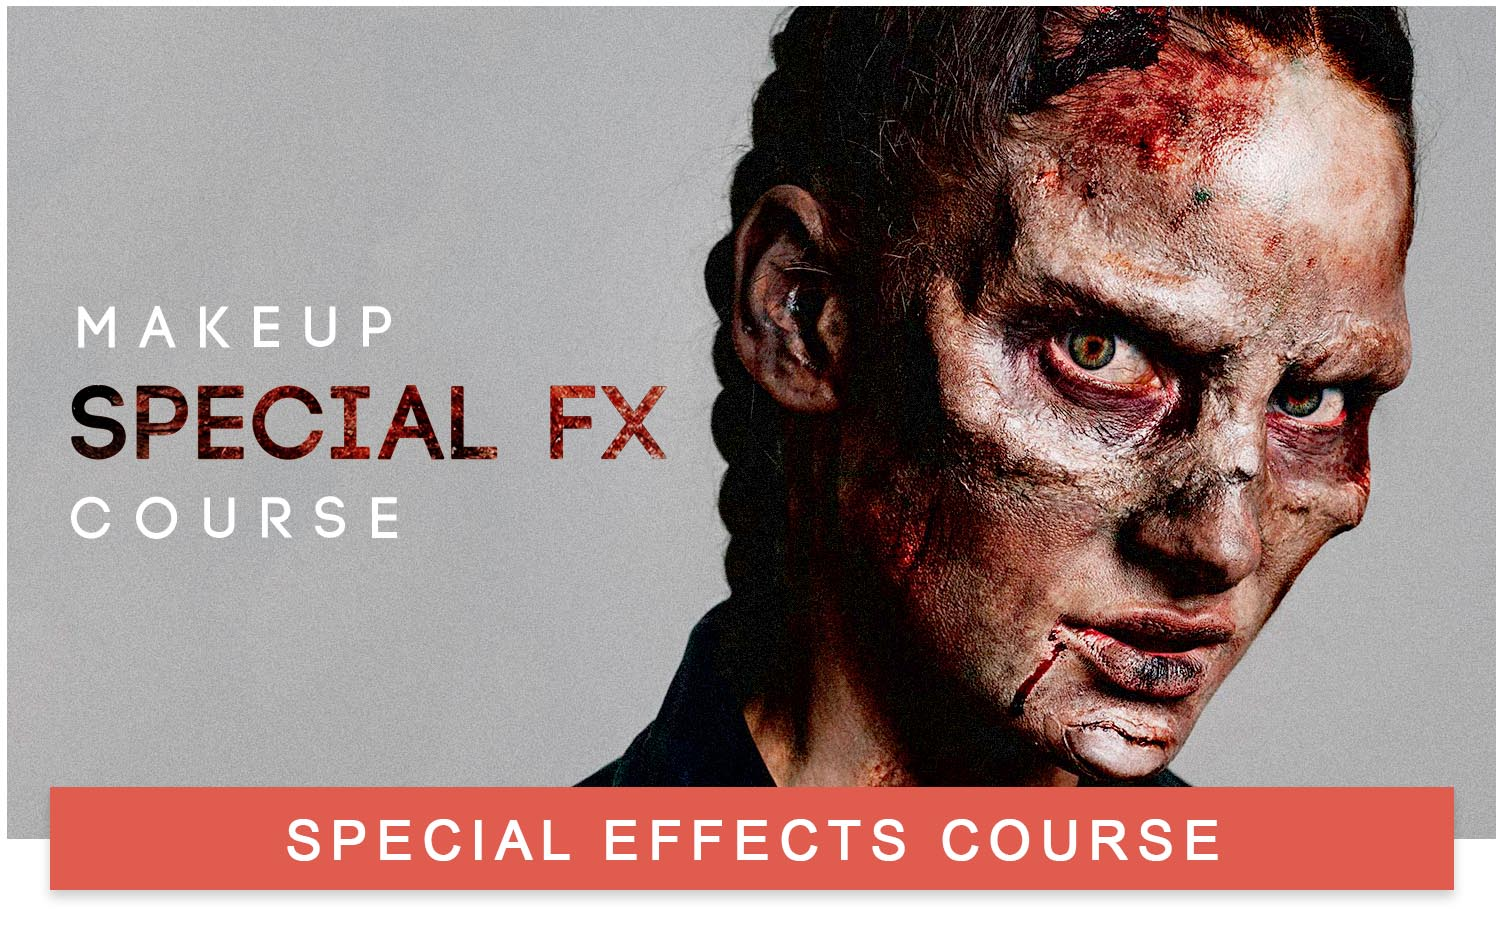 Special-Effects-FX-Makeup-Artist-Course.jpg